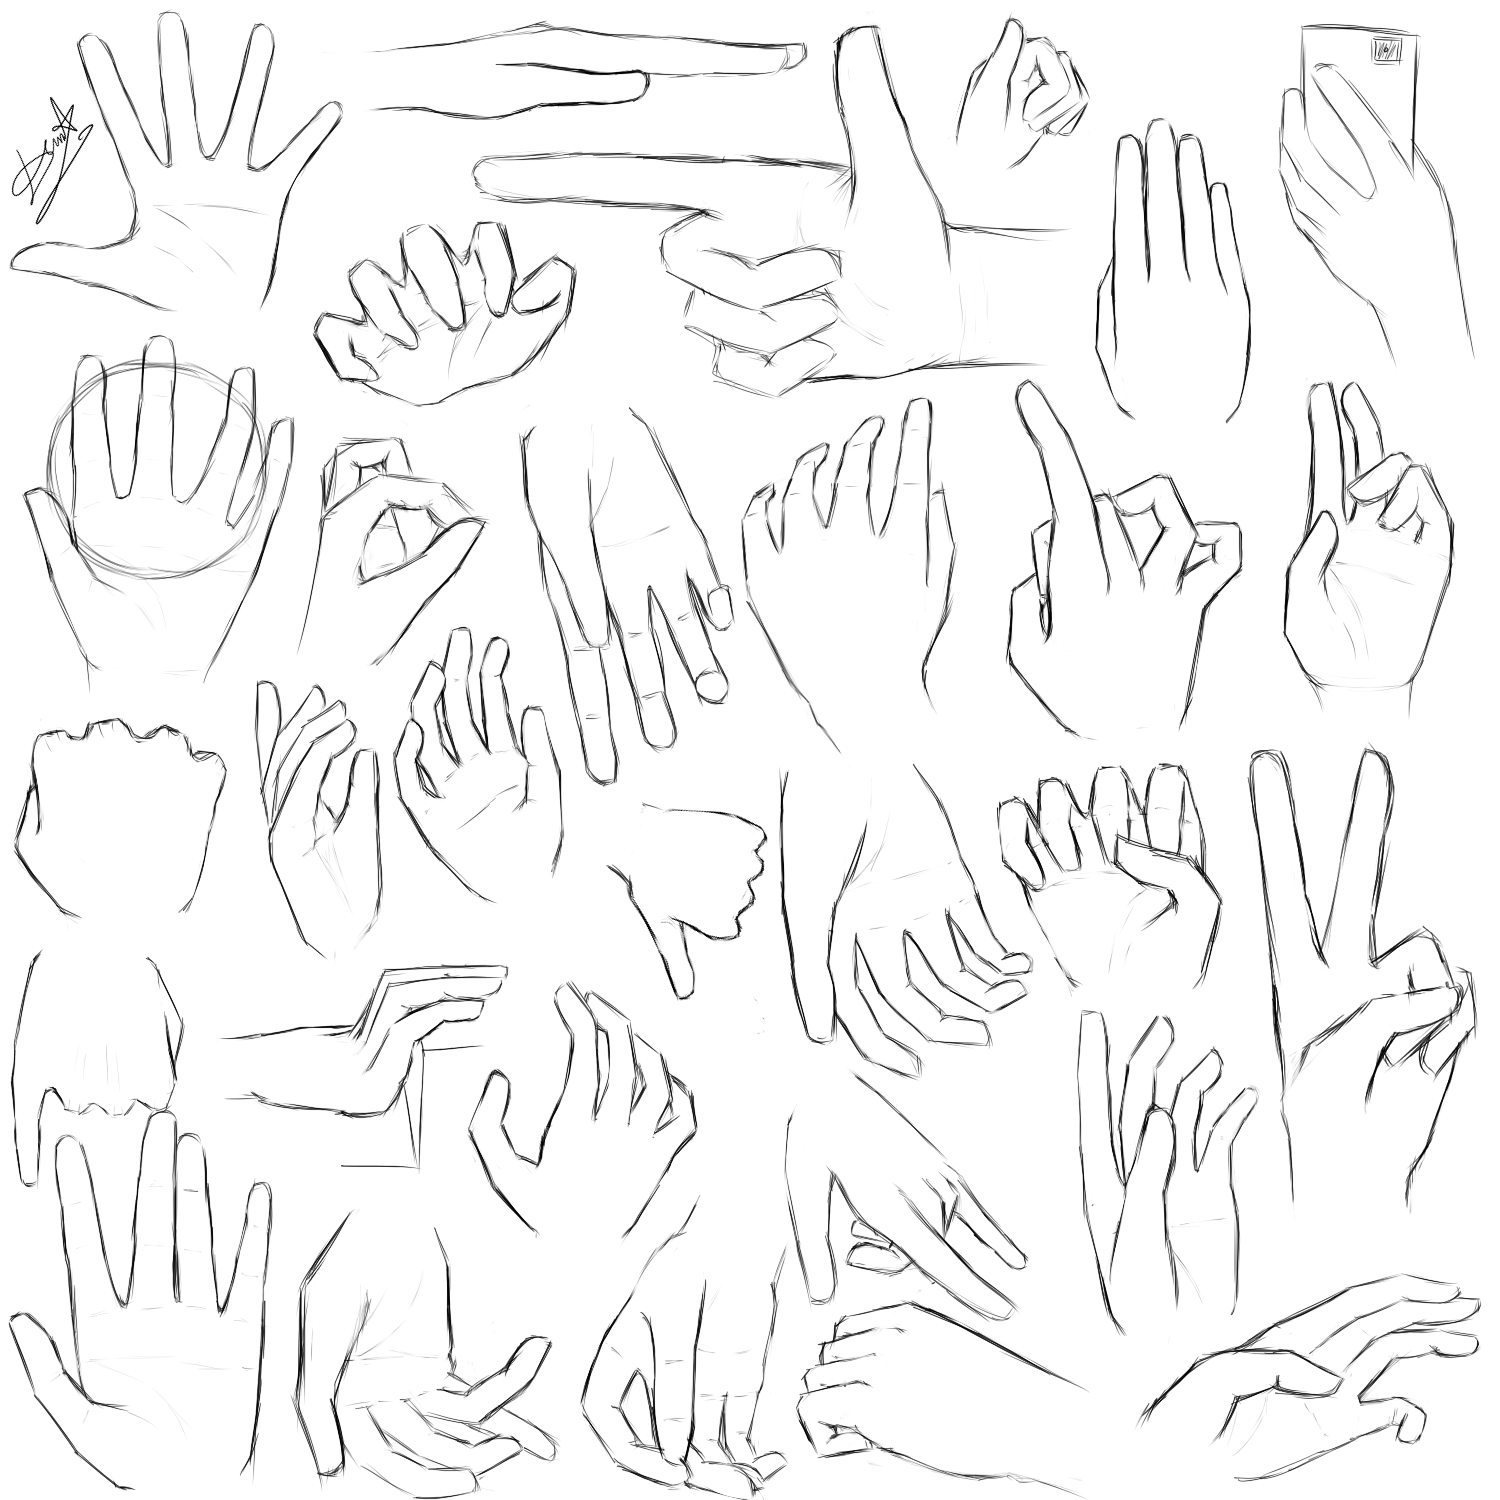 Left Hands Drawing Left Hand Holding Something